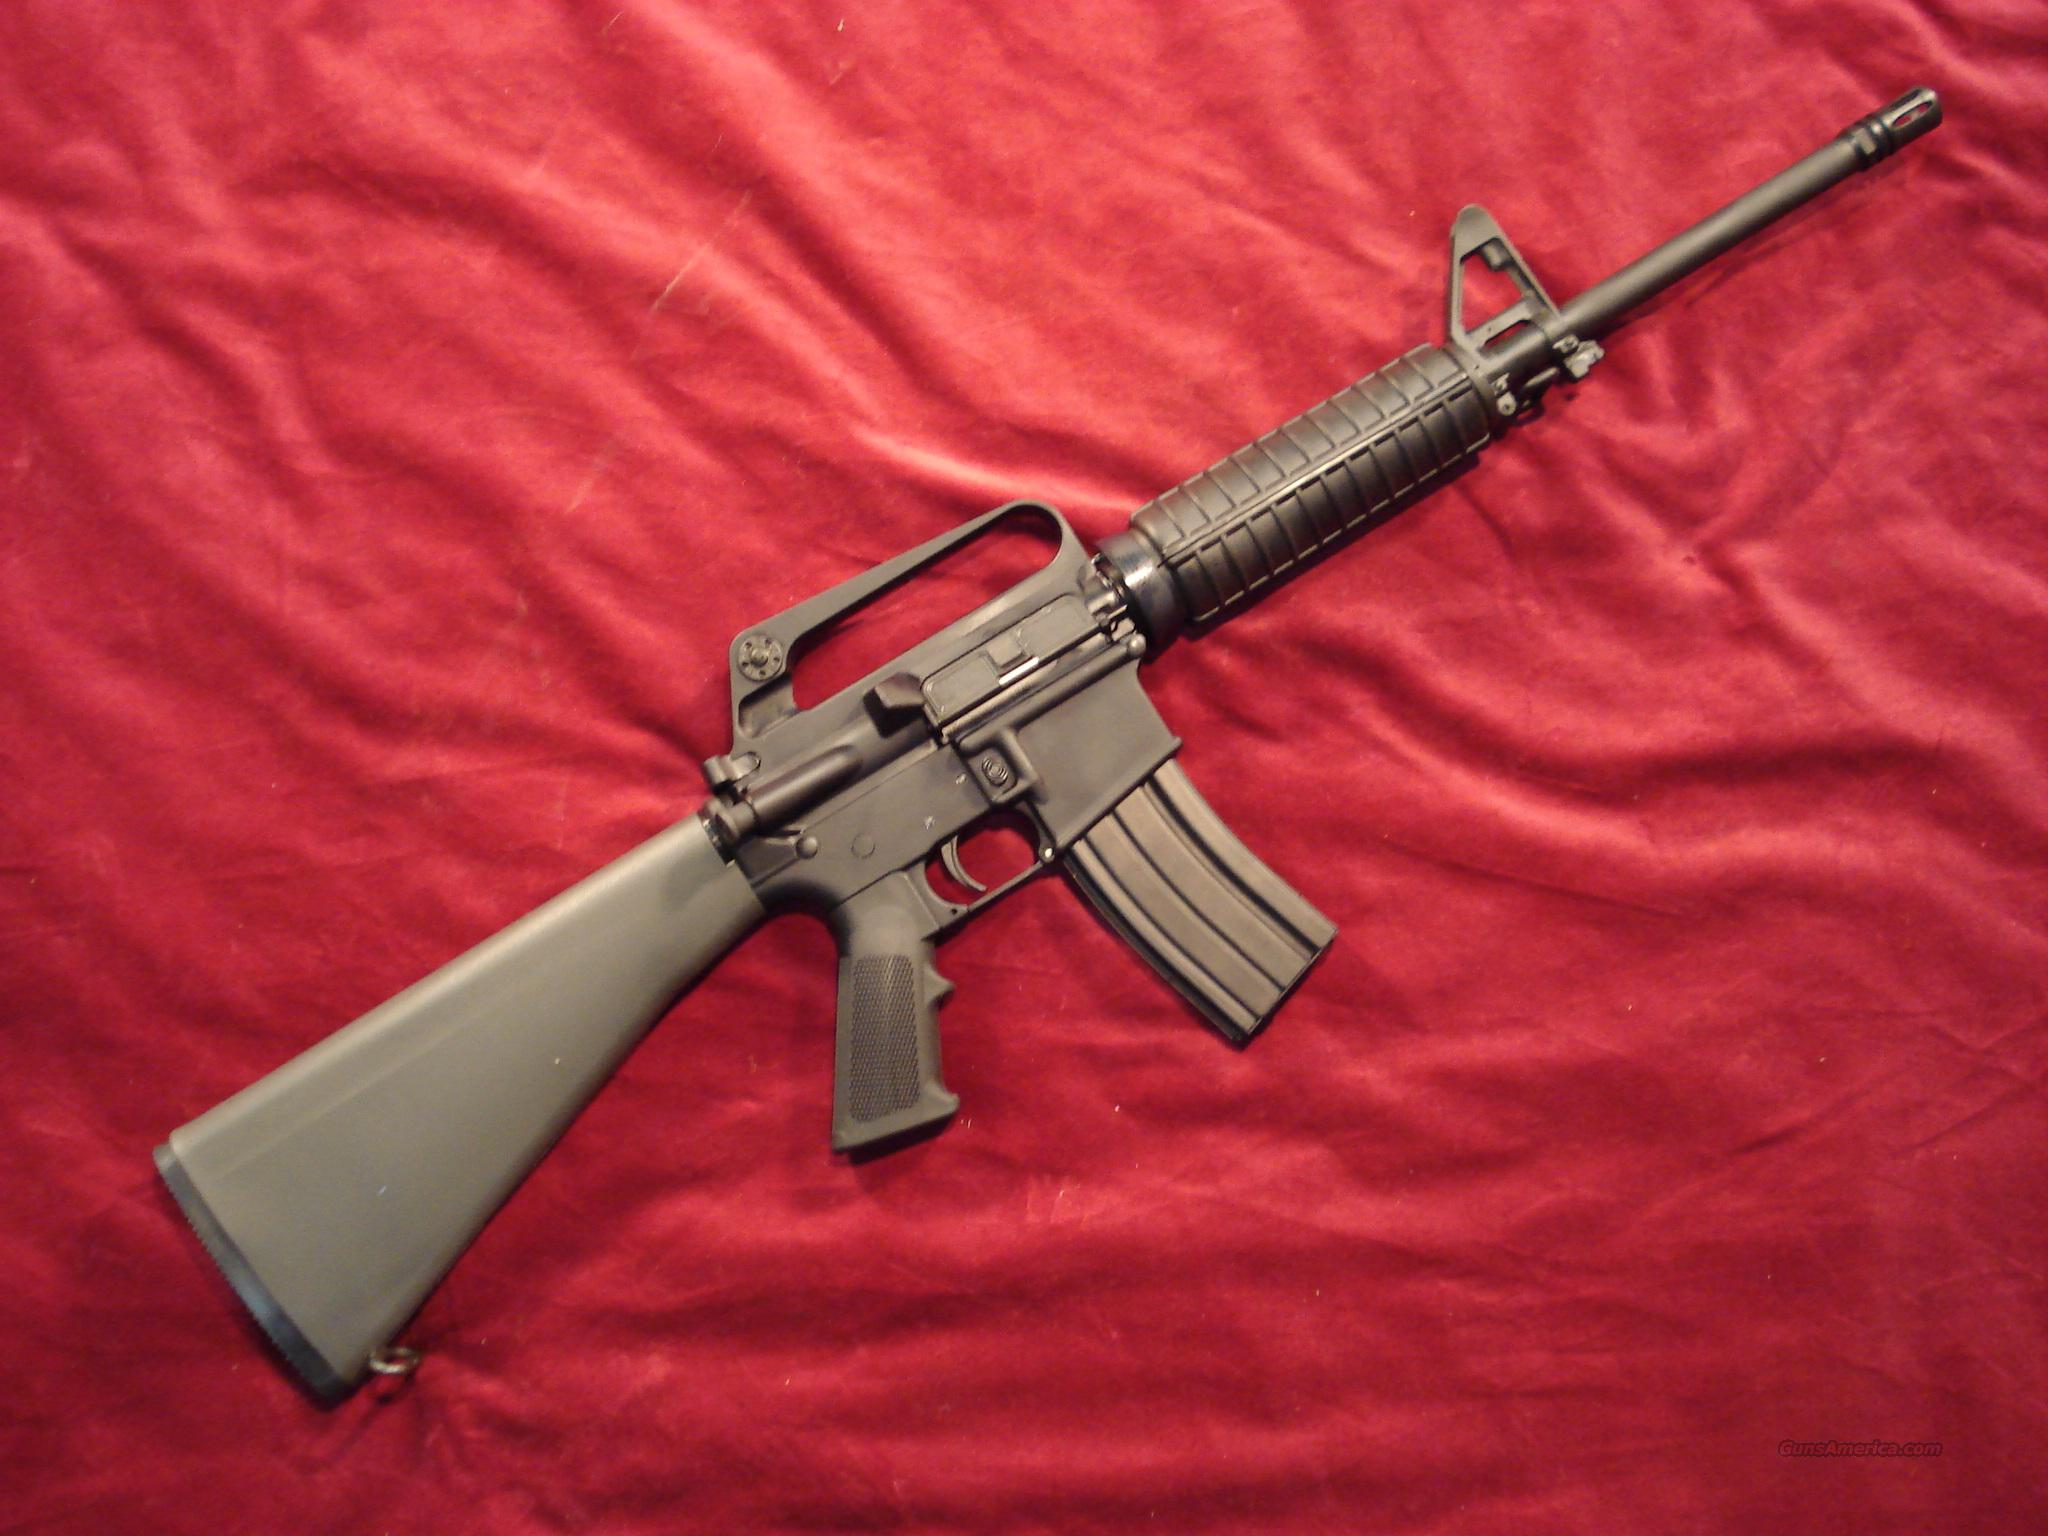 OLYMPIC ARMS PLINKER PLUS for sale